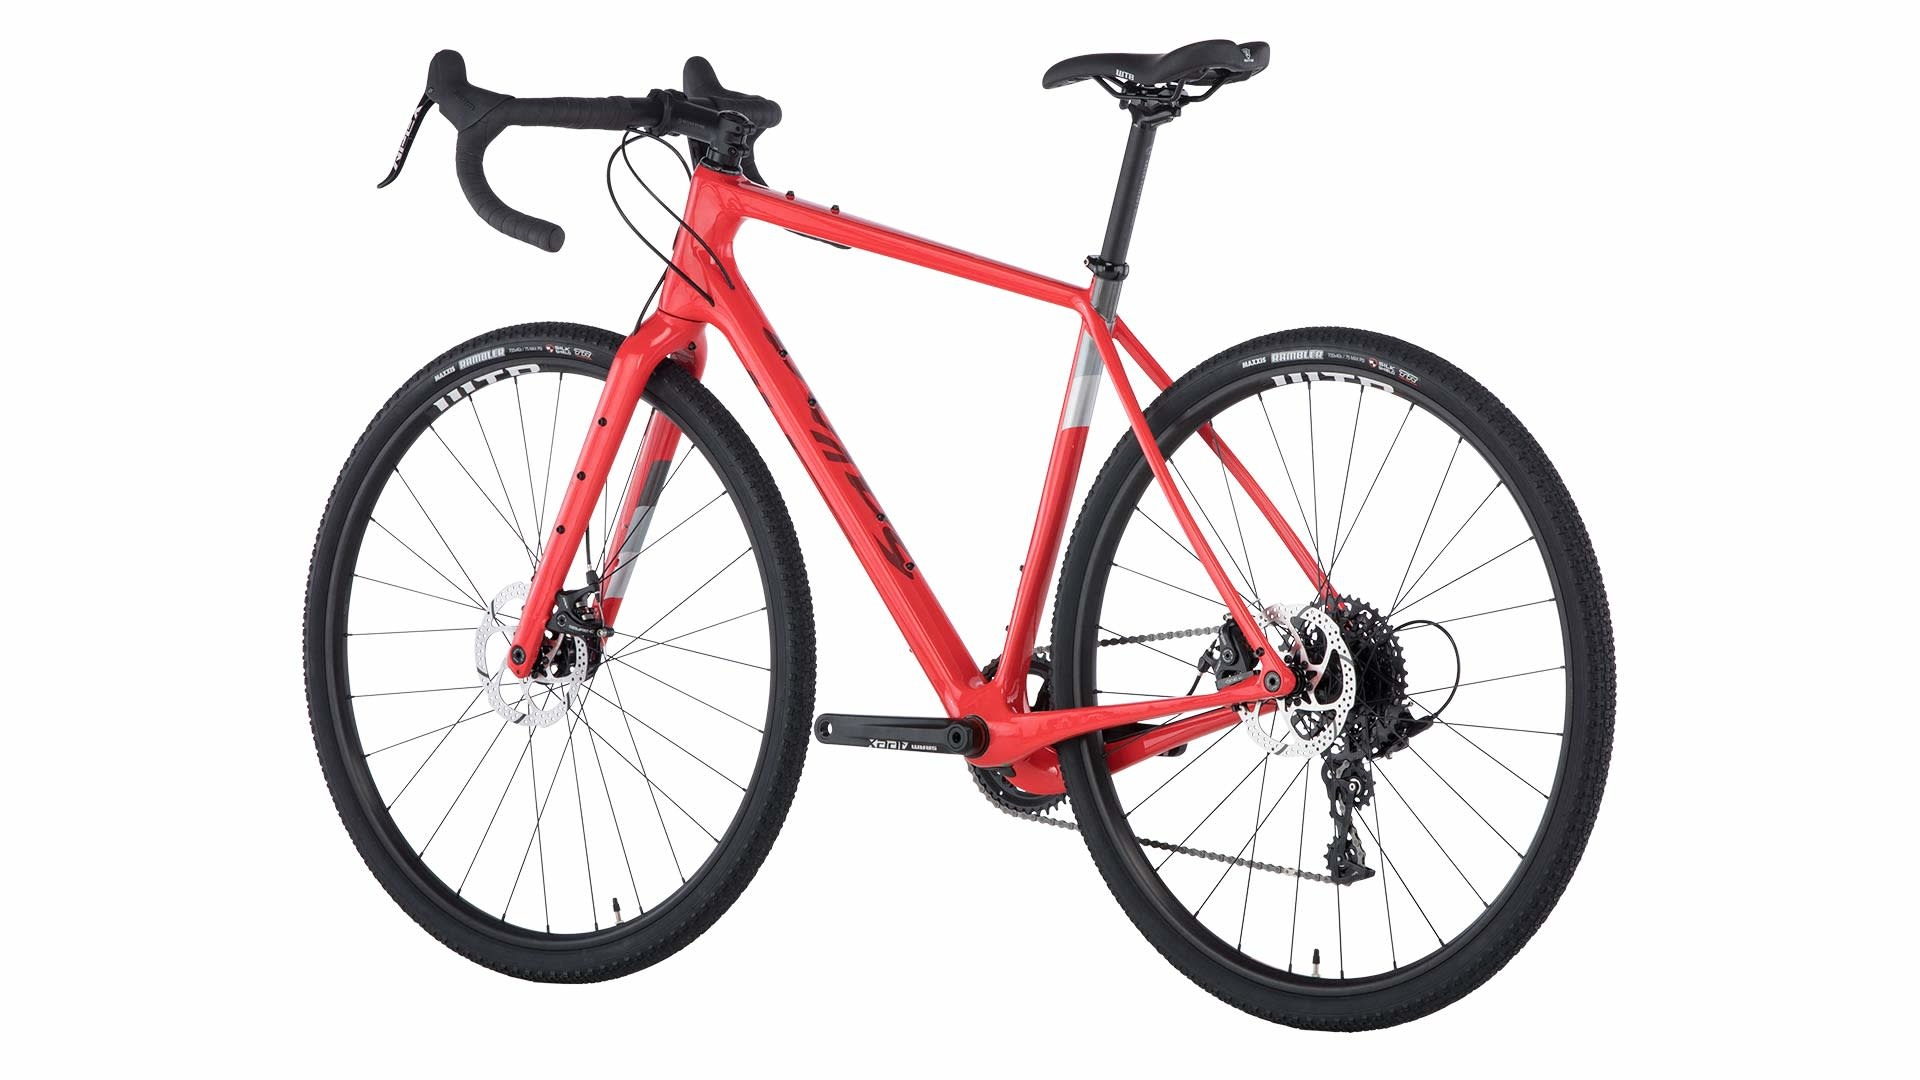 Salsa Salsa Warbird Carbon 700c Apex 1 Bike, Red 2019